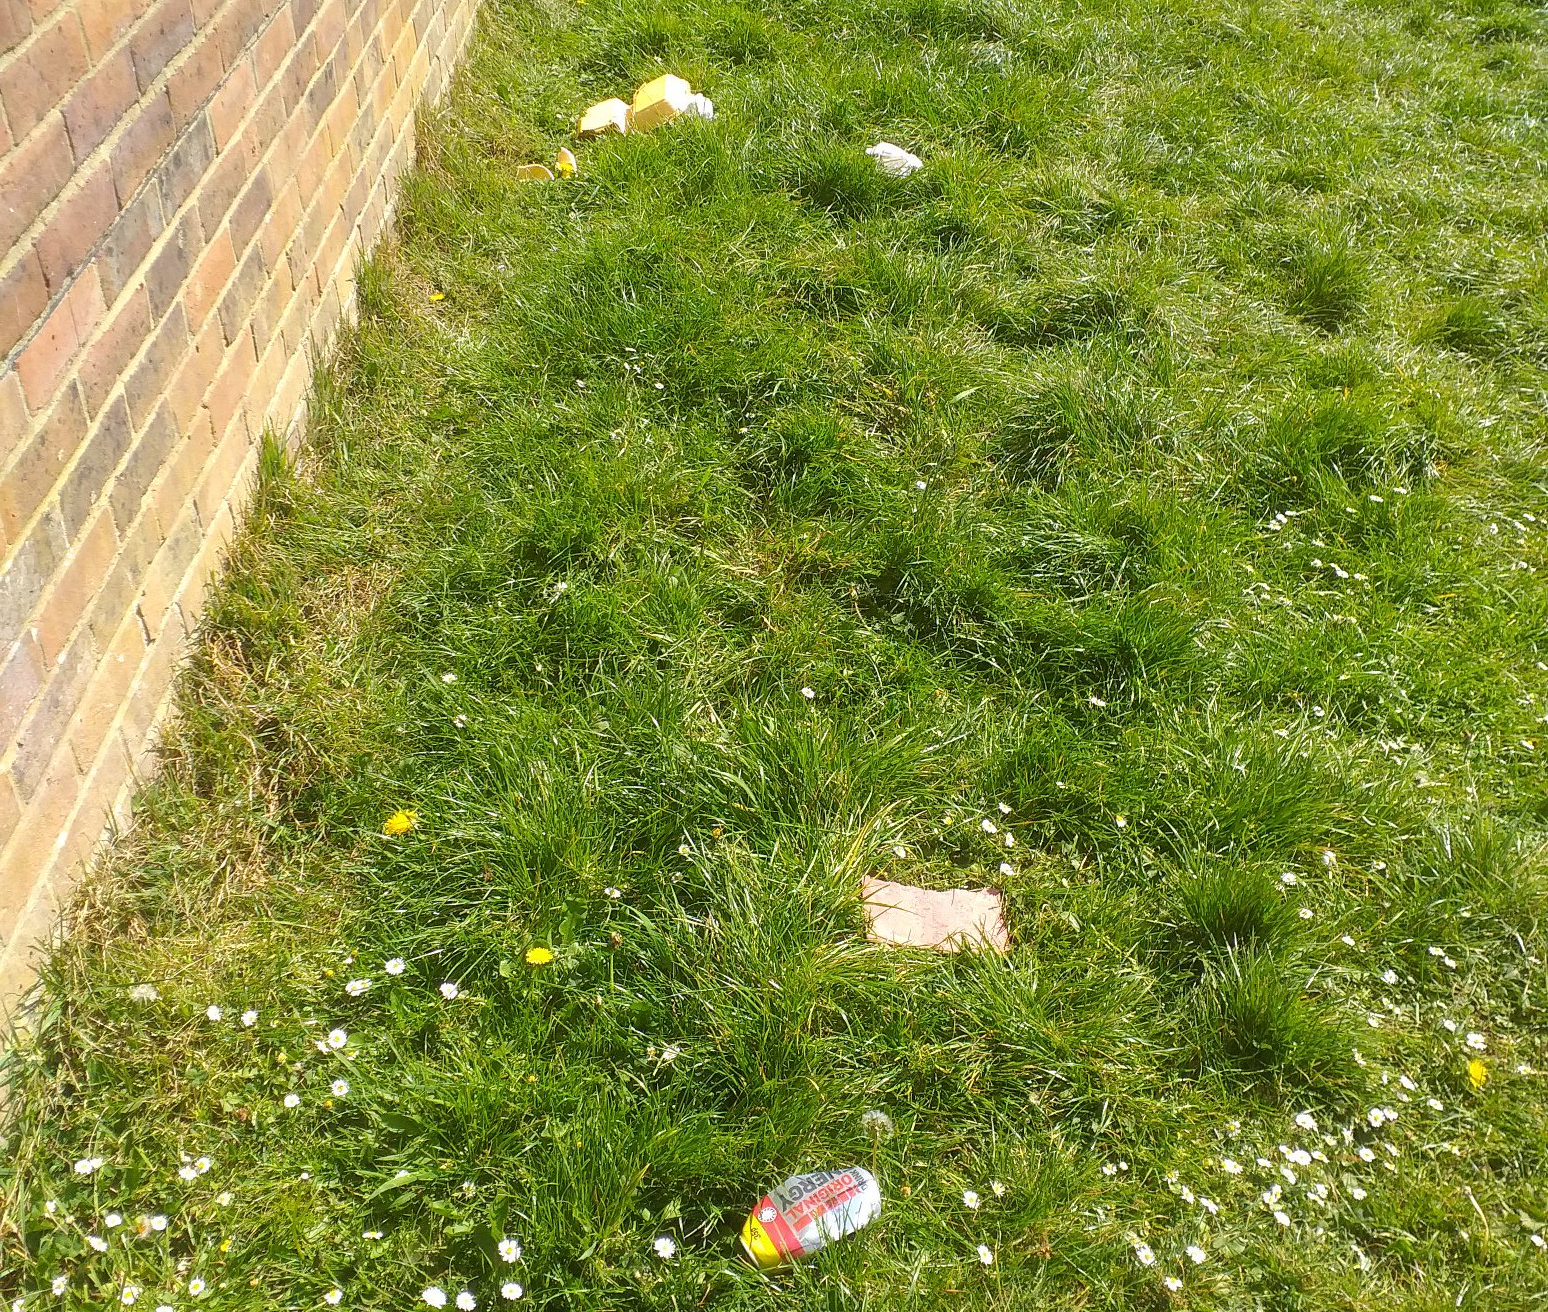 A repeat litter spot on Earlswood Common